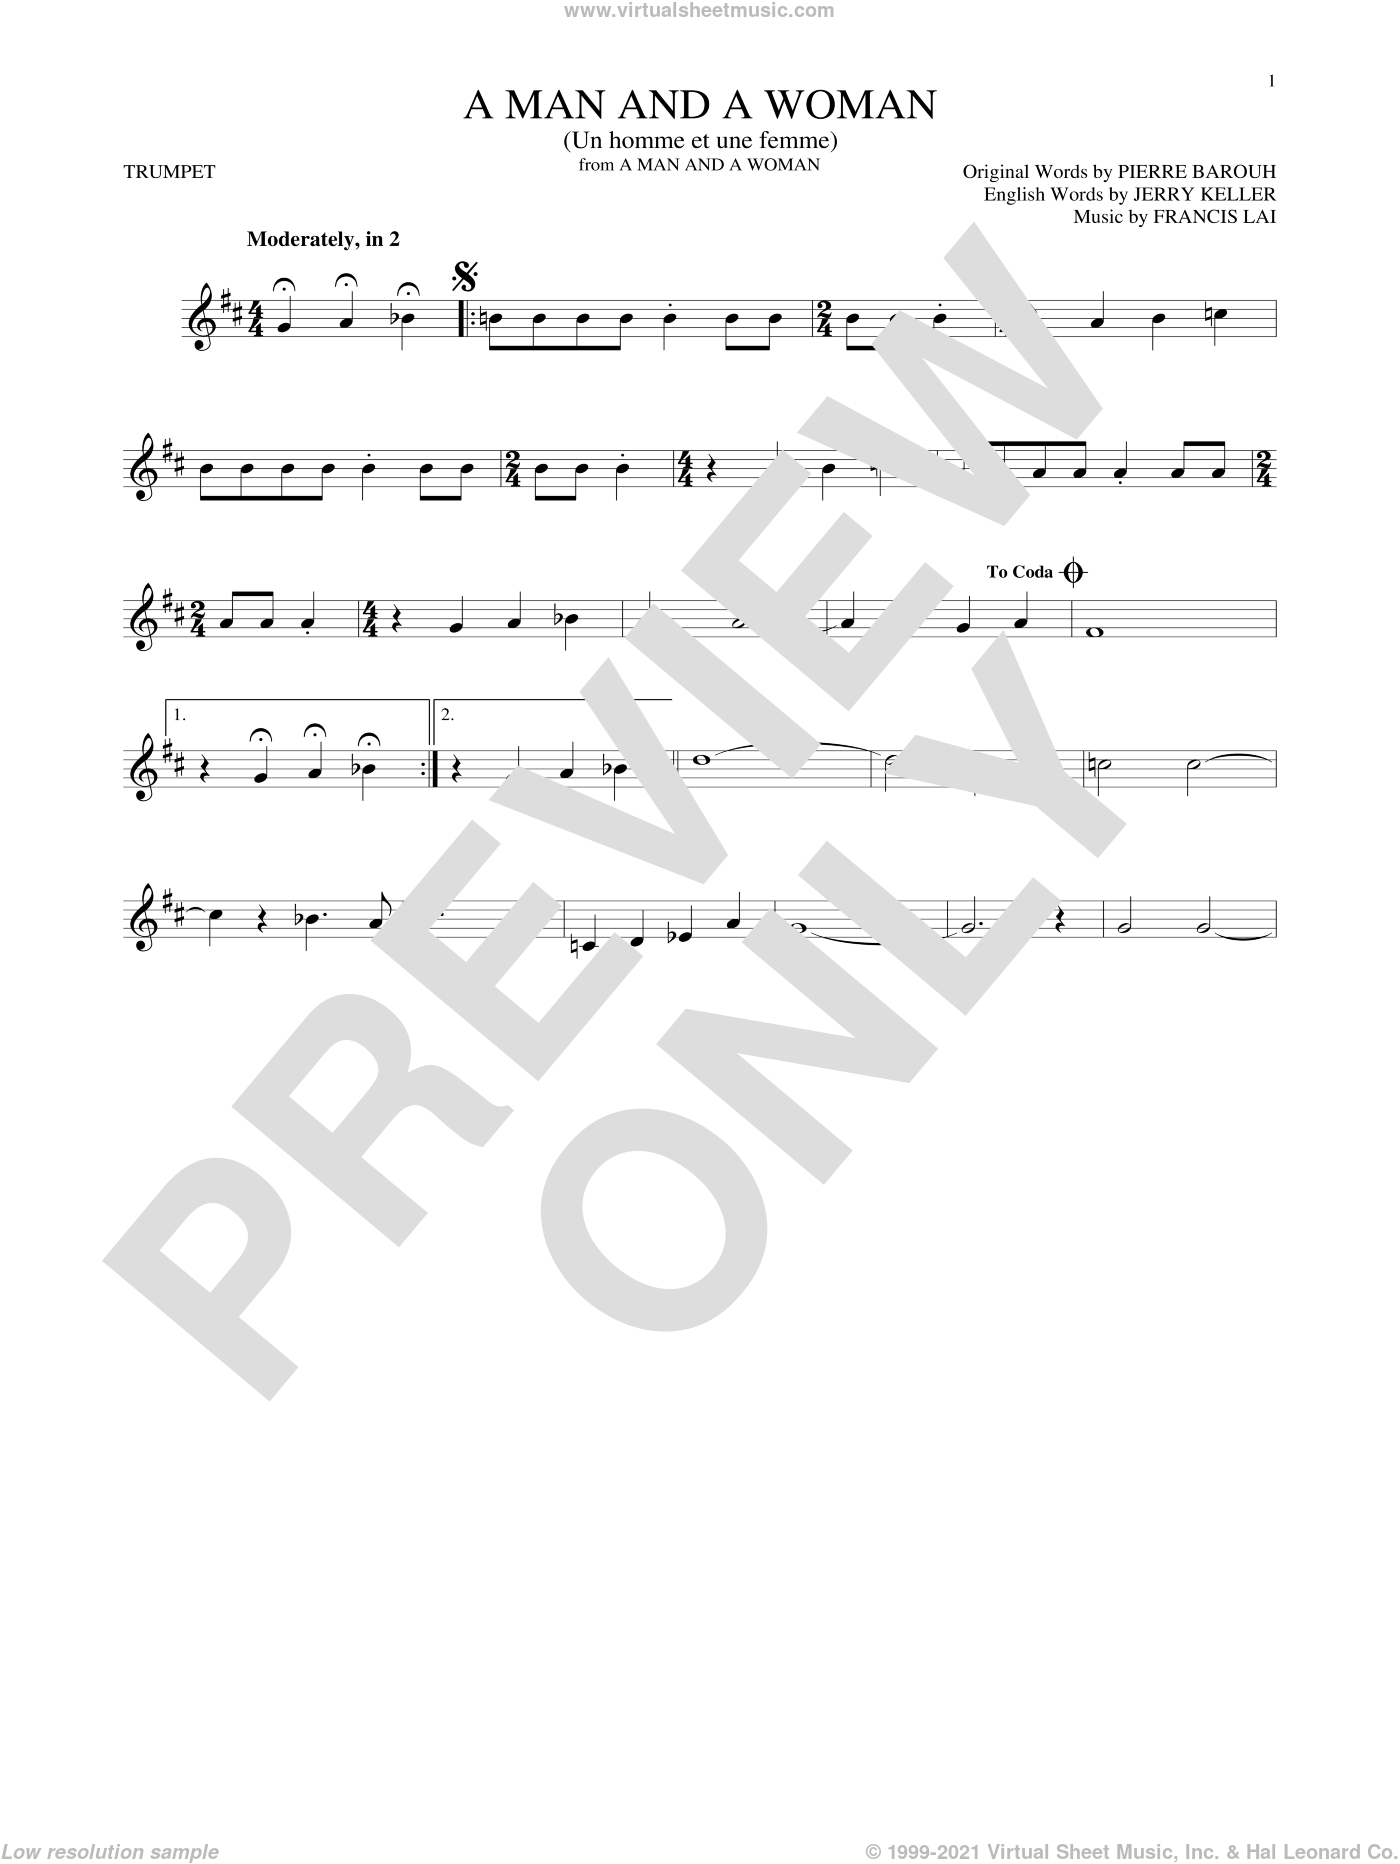 A Man And A Woman (Un Homme Et Une Femme) sheet music for trumpet solo by Pierre Barouh